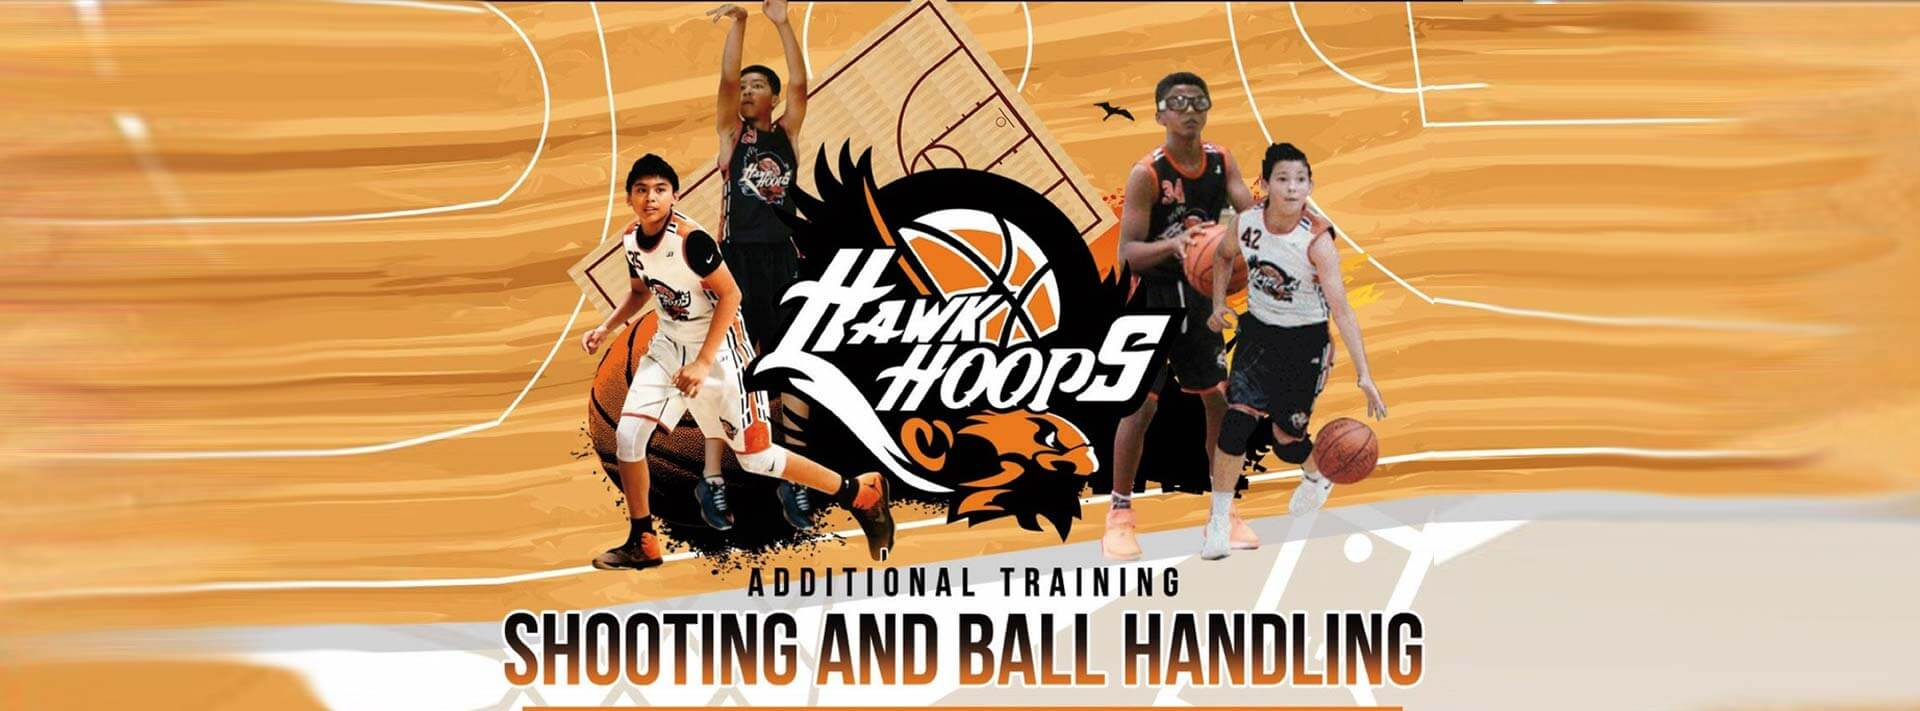 shotting and ballhandling